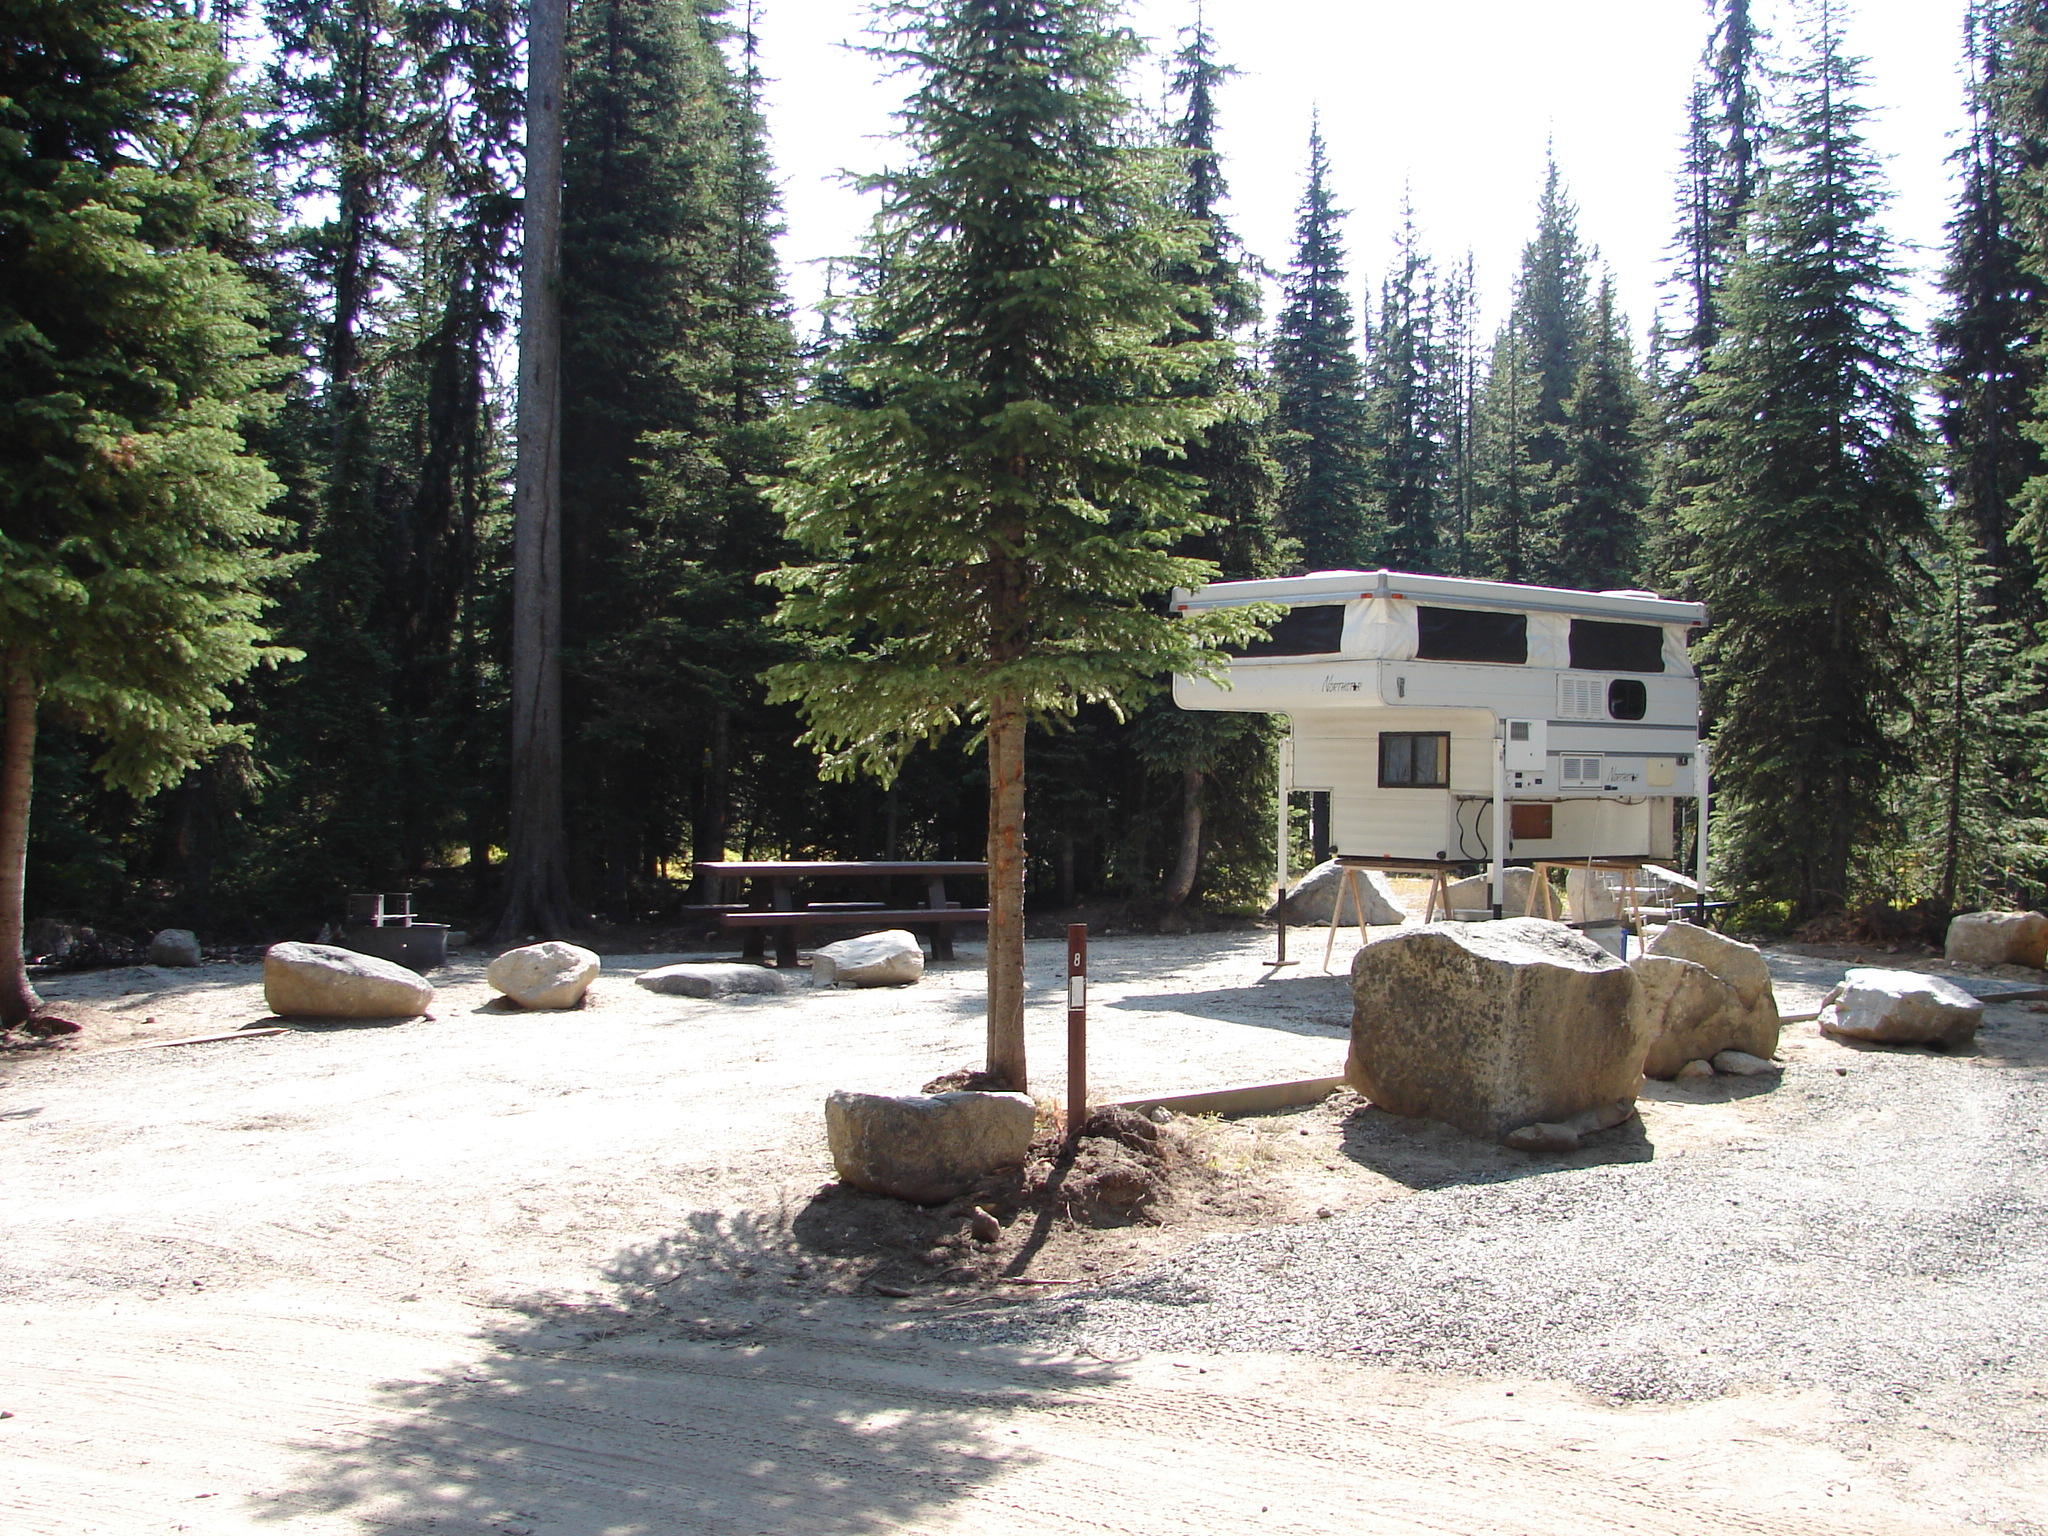 Truck camper at Grande Ronde Lake Campround in pine trees